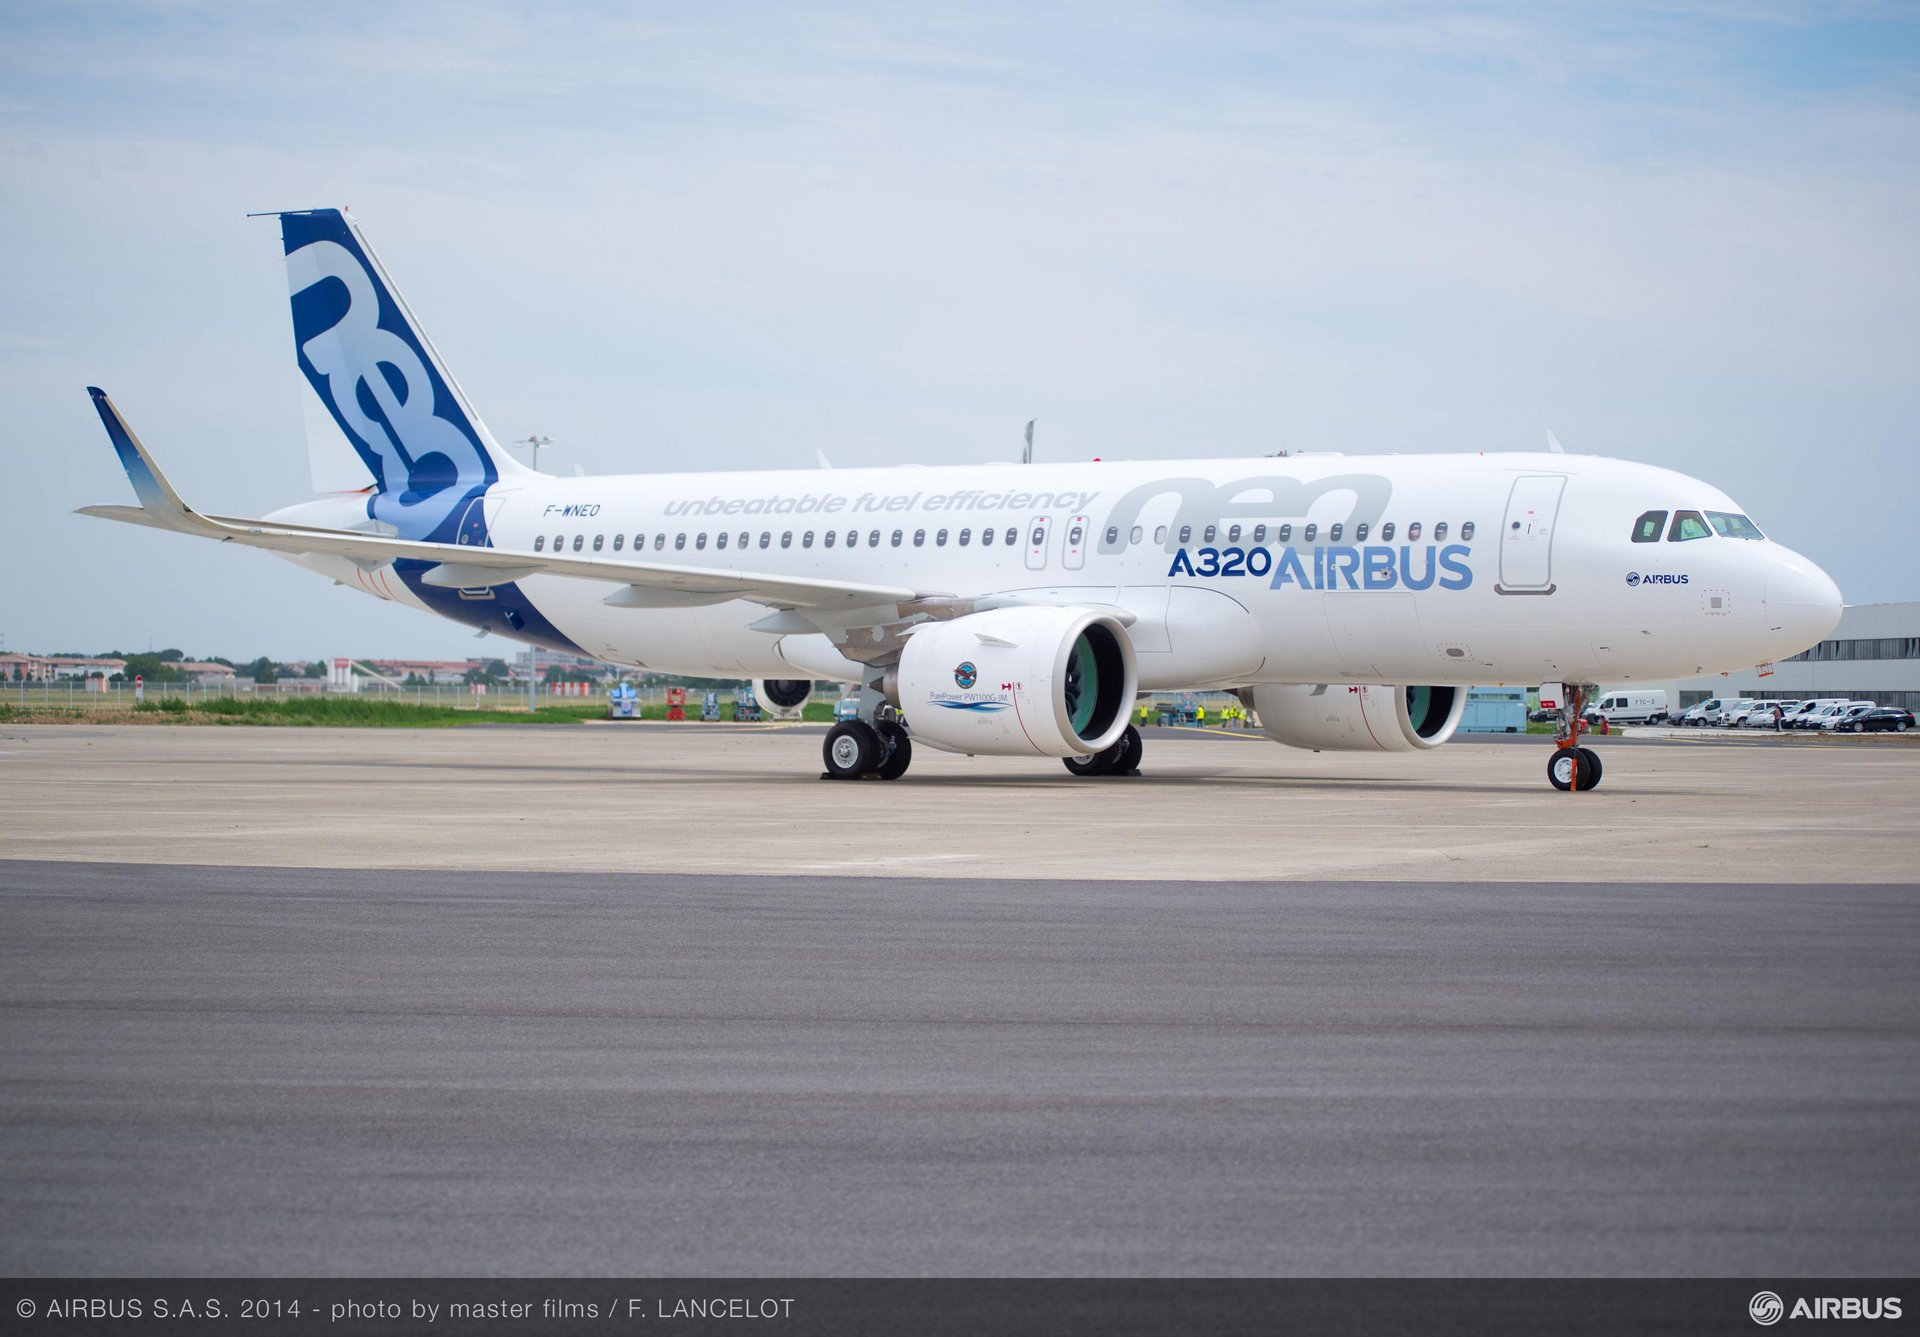 Airbus' A320neo (new engine option) Family reached an important milestone during the Farnborough International Airshow: more than 3,000 firm orders from 57 customers since its launch in December 2010